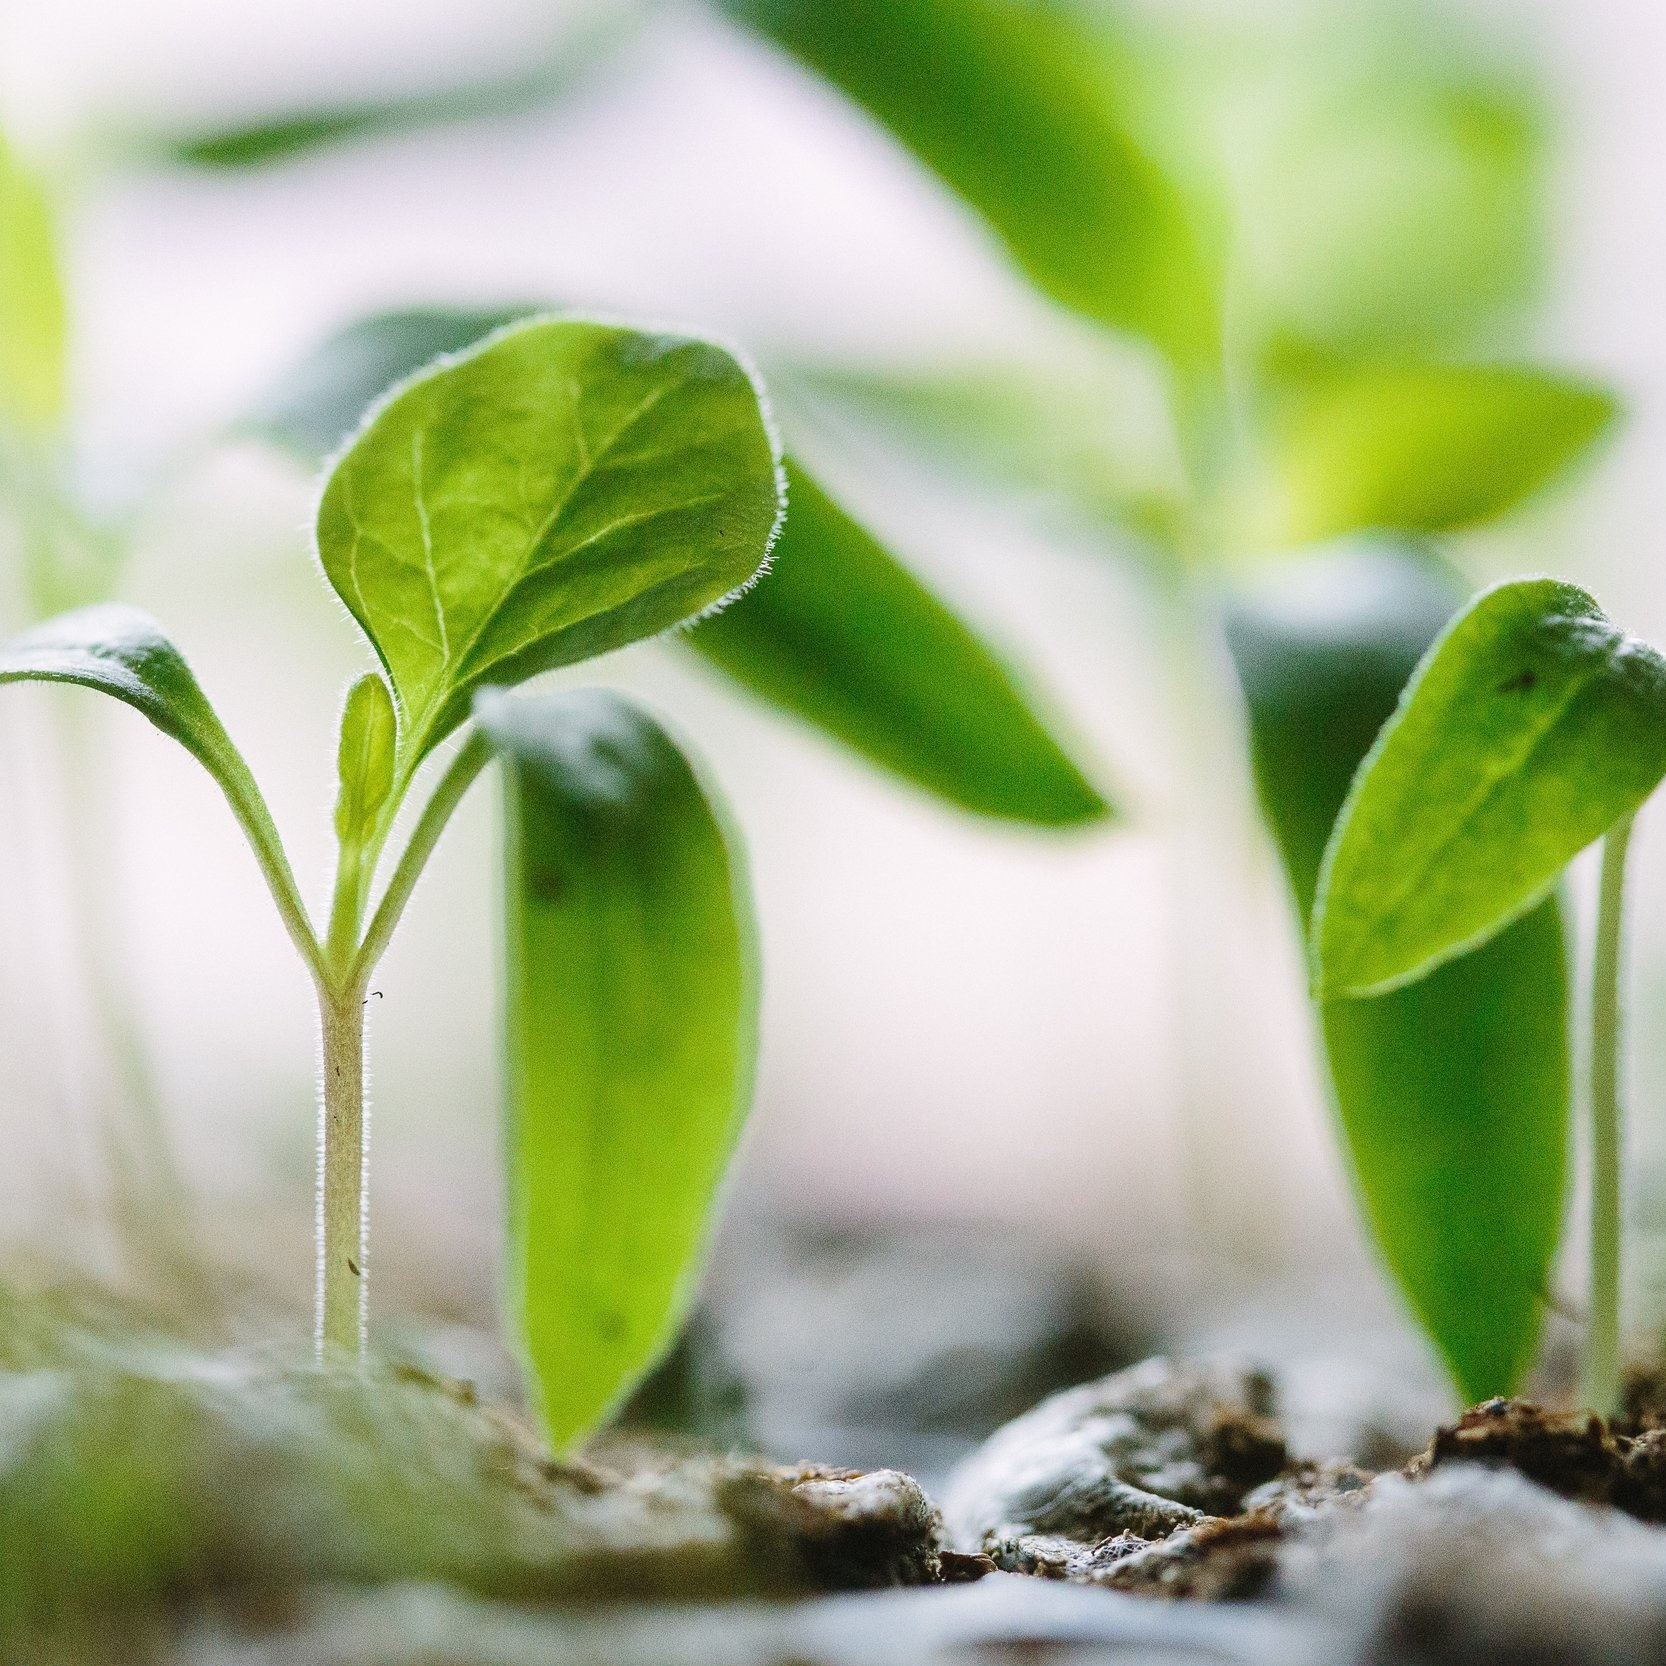 The value of human beings and plants